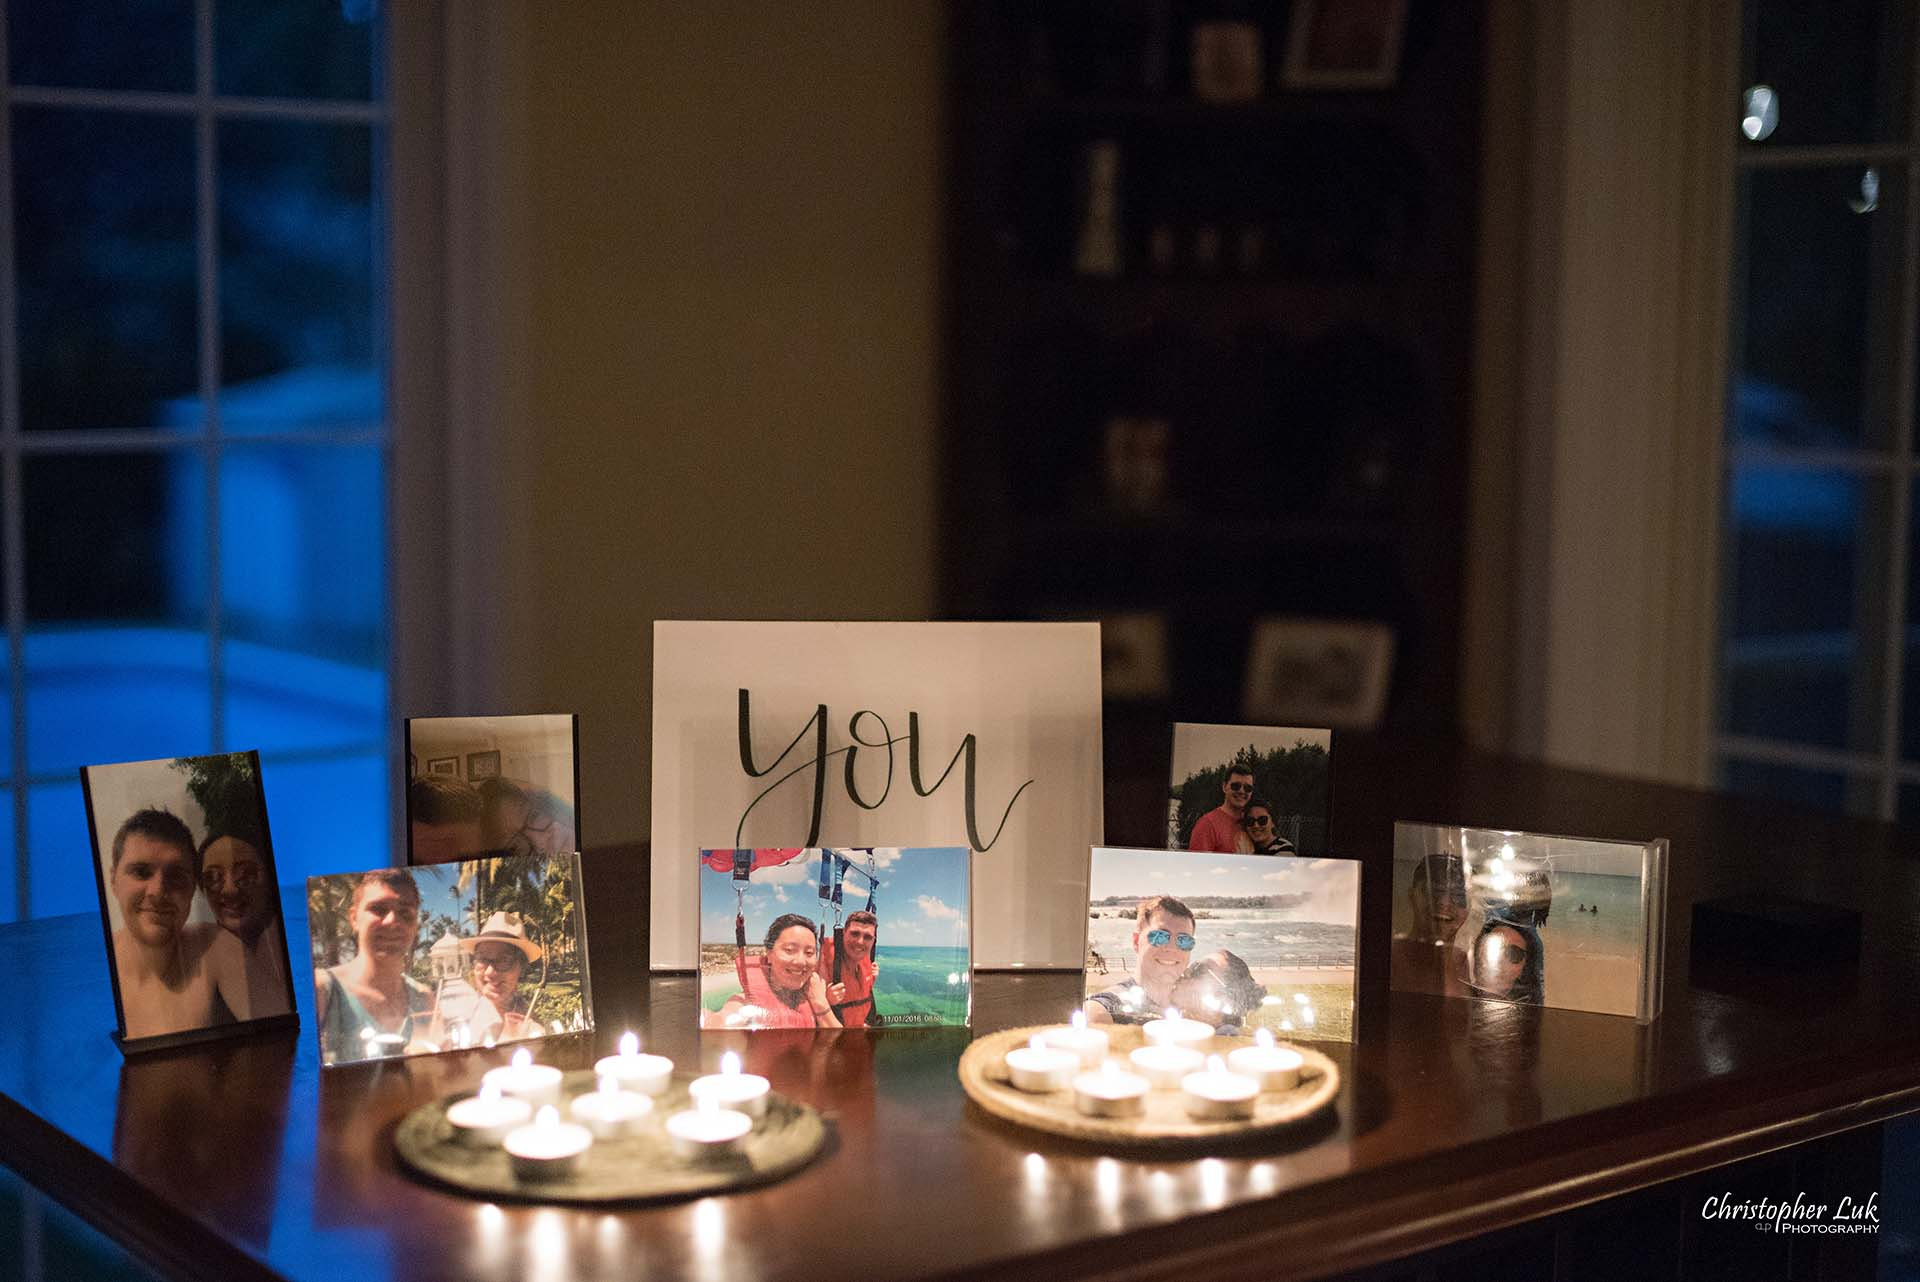 Christopher Luk Toronto Wedding Photographer - Backyard Surprise Proposal Engaged Engagement Gazebo Christmas Fairy Twinkle Lights Flower Petals Marry Me Tea Lights Candles You Table